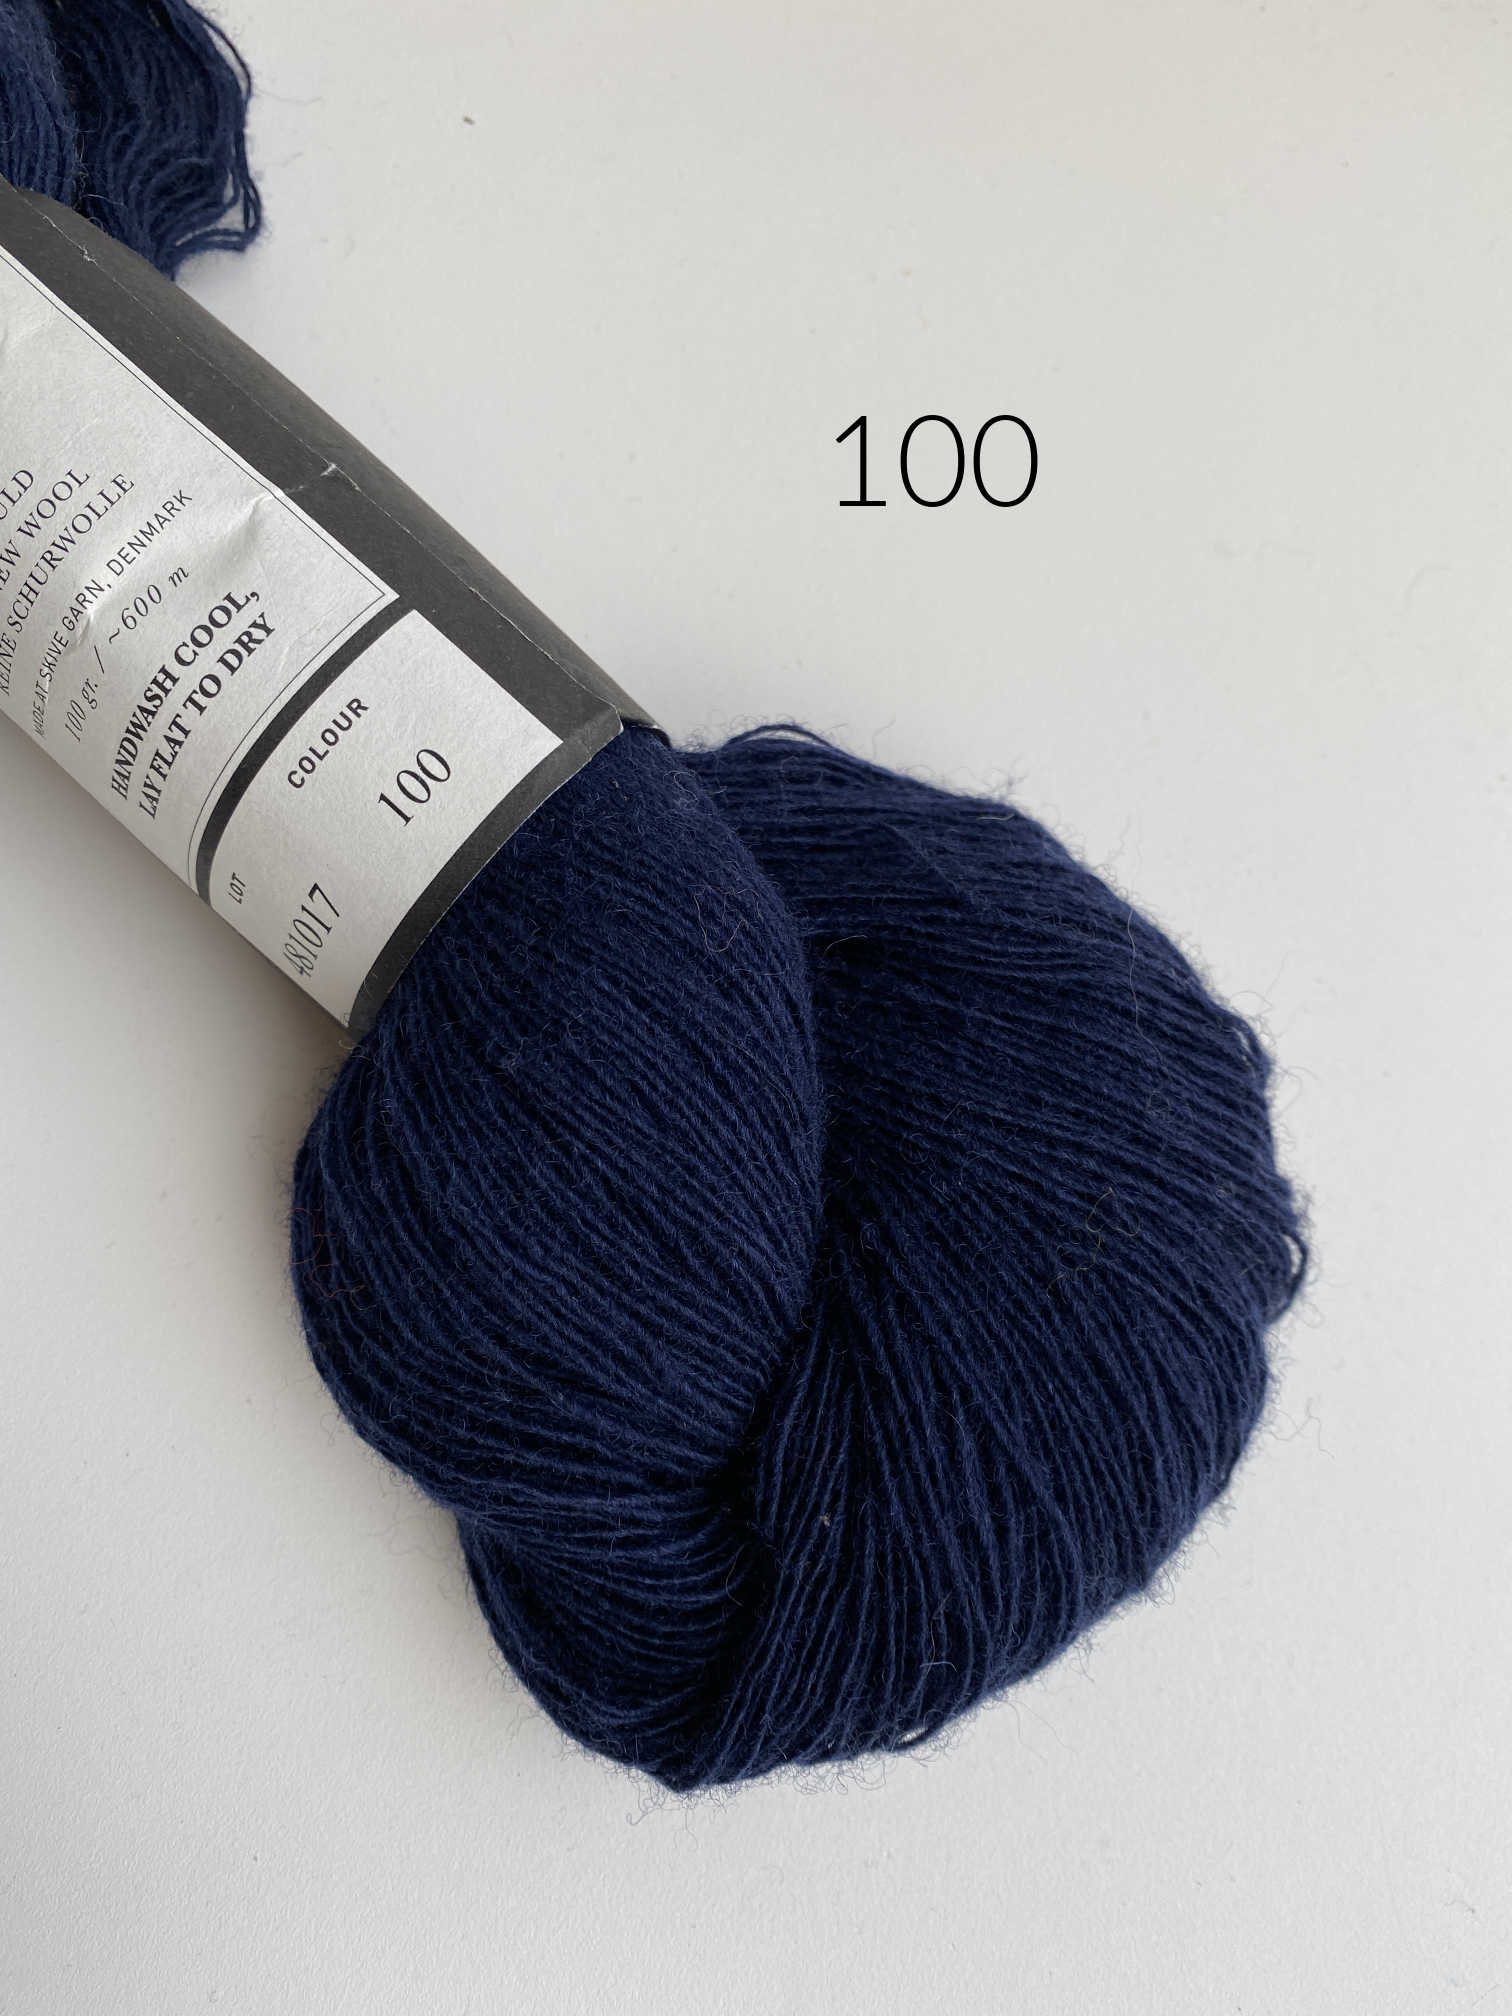 Isager Spinni - 100g